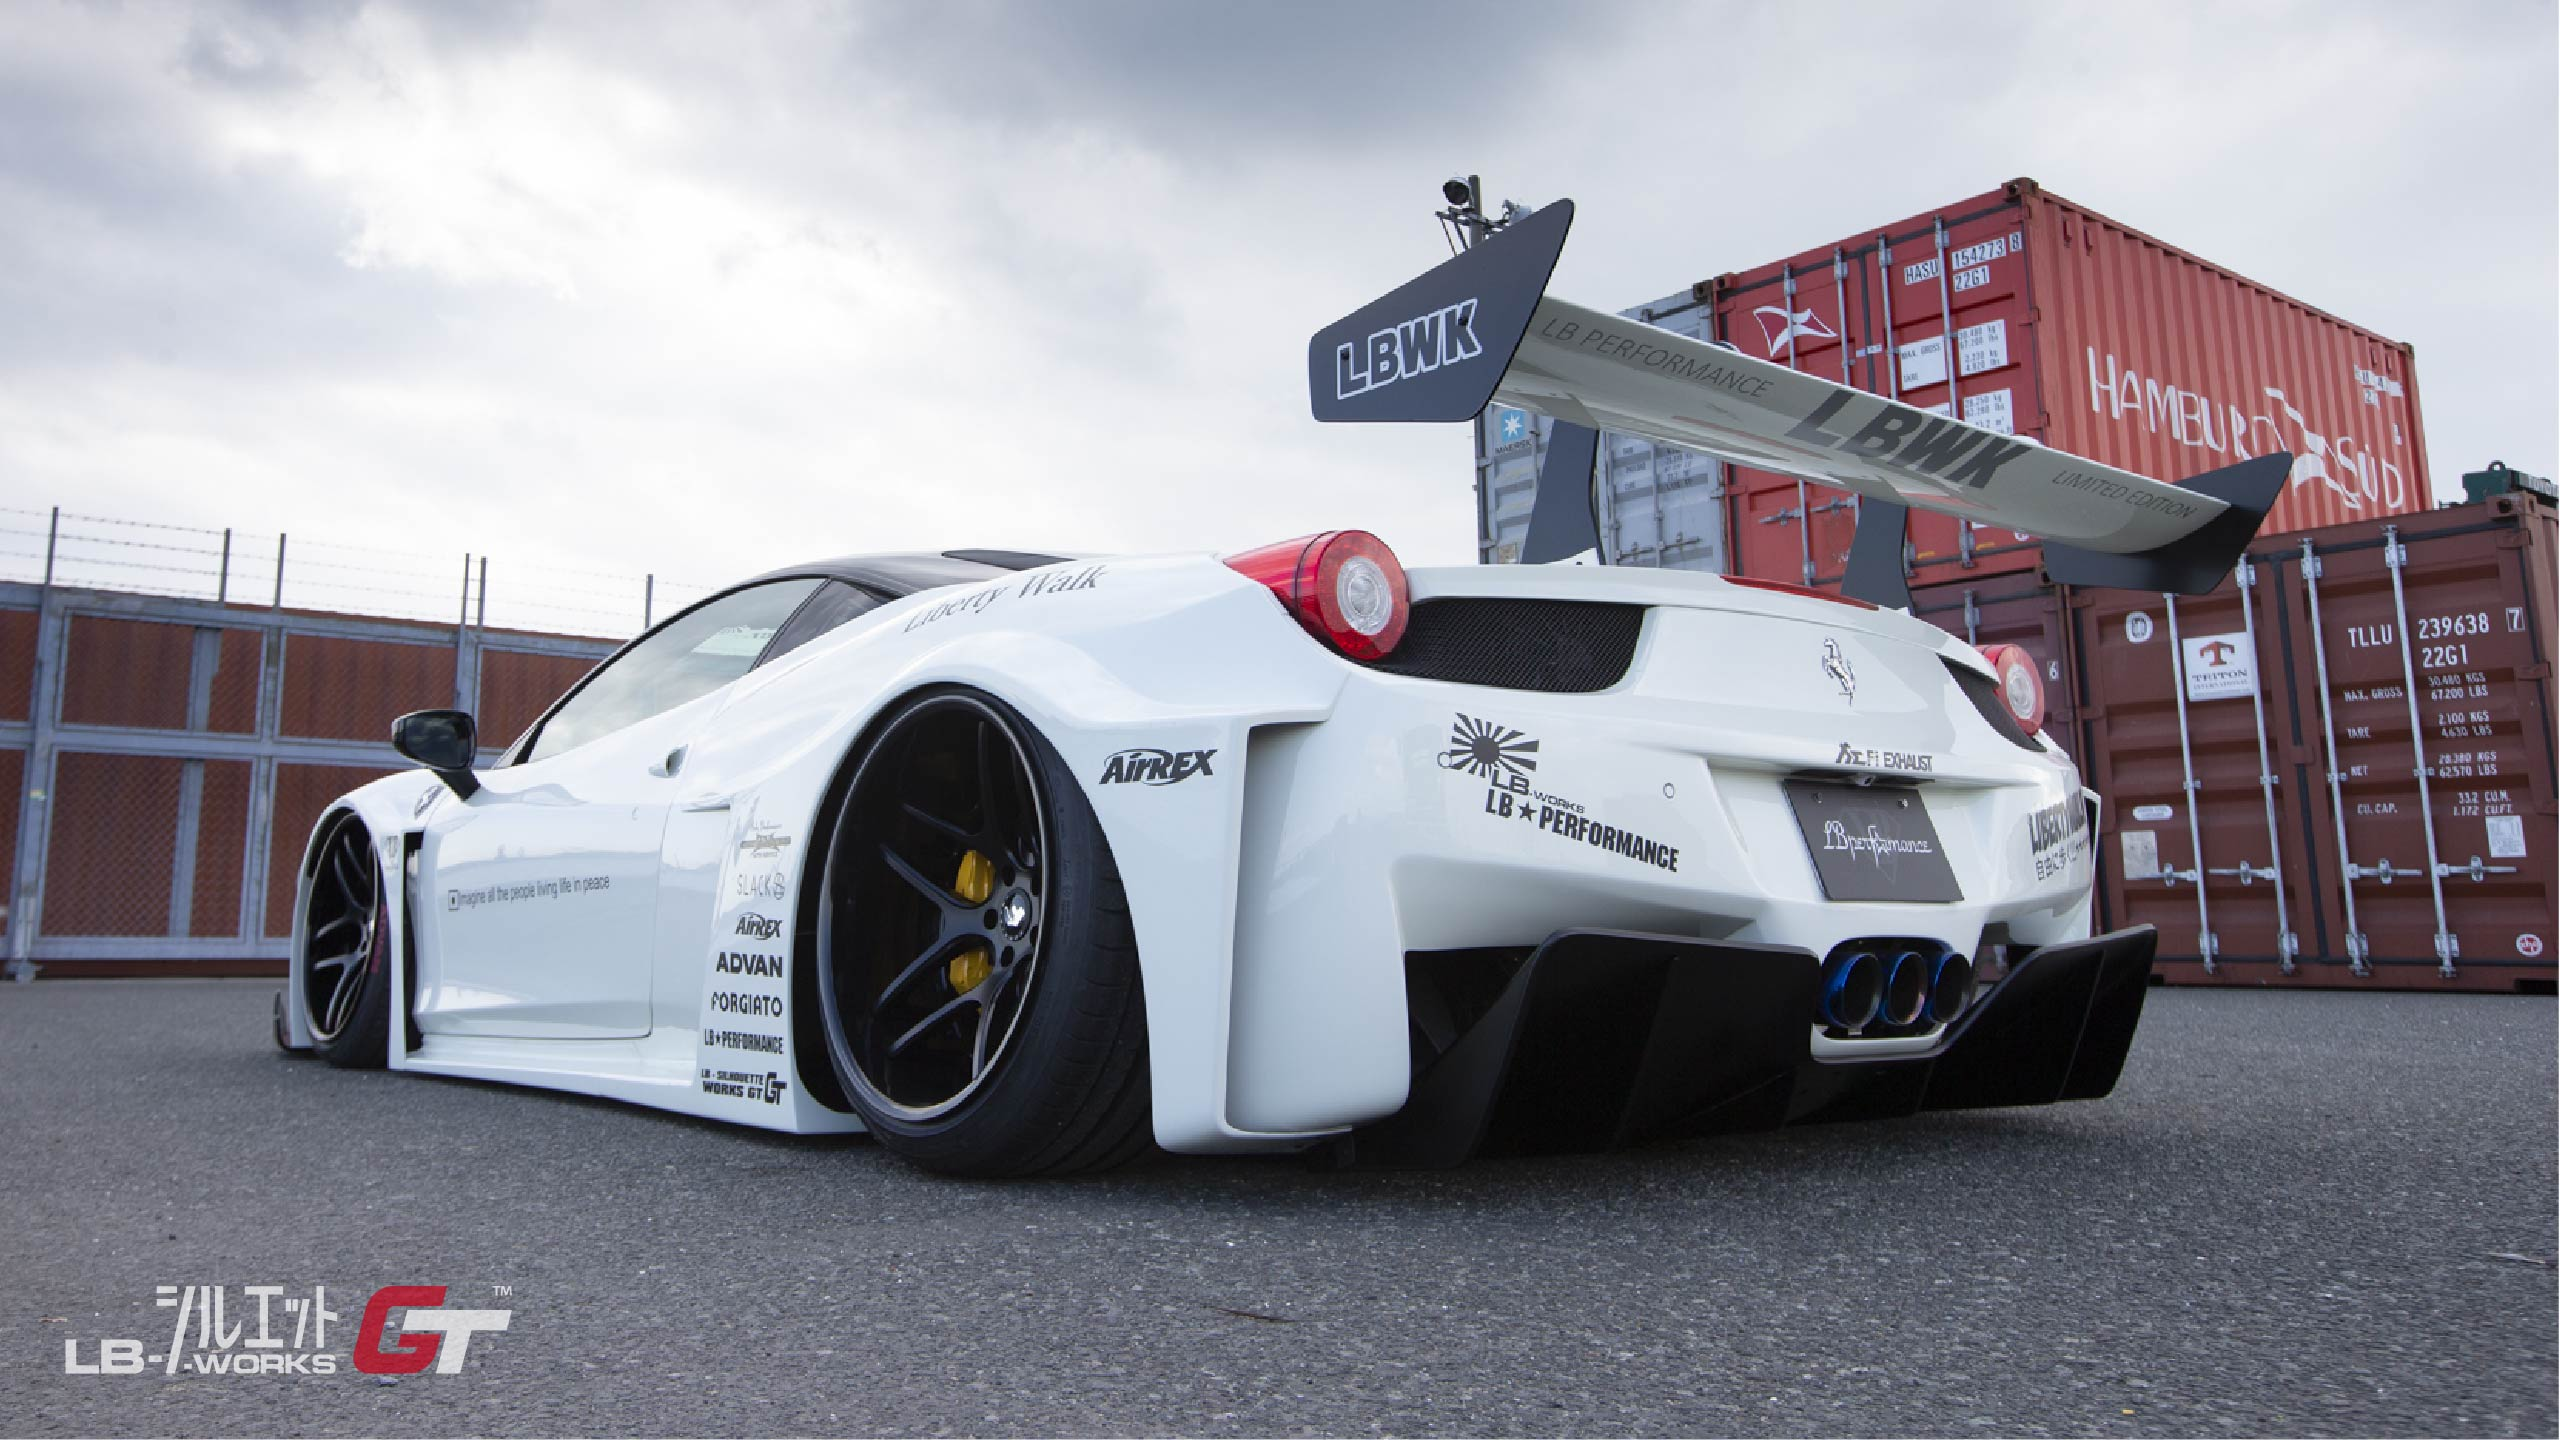 458gt_7-501 LB-Silhouette WORKS 458 GT